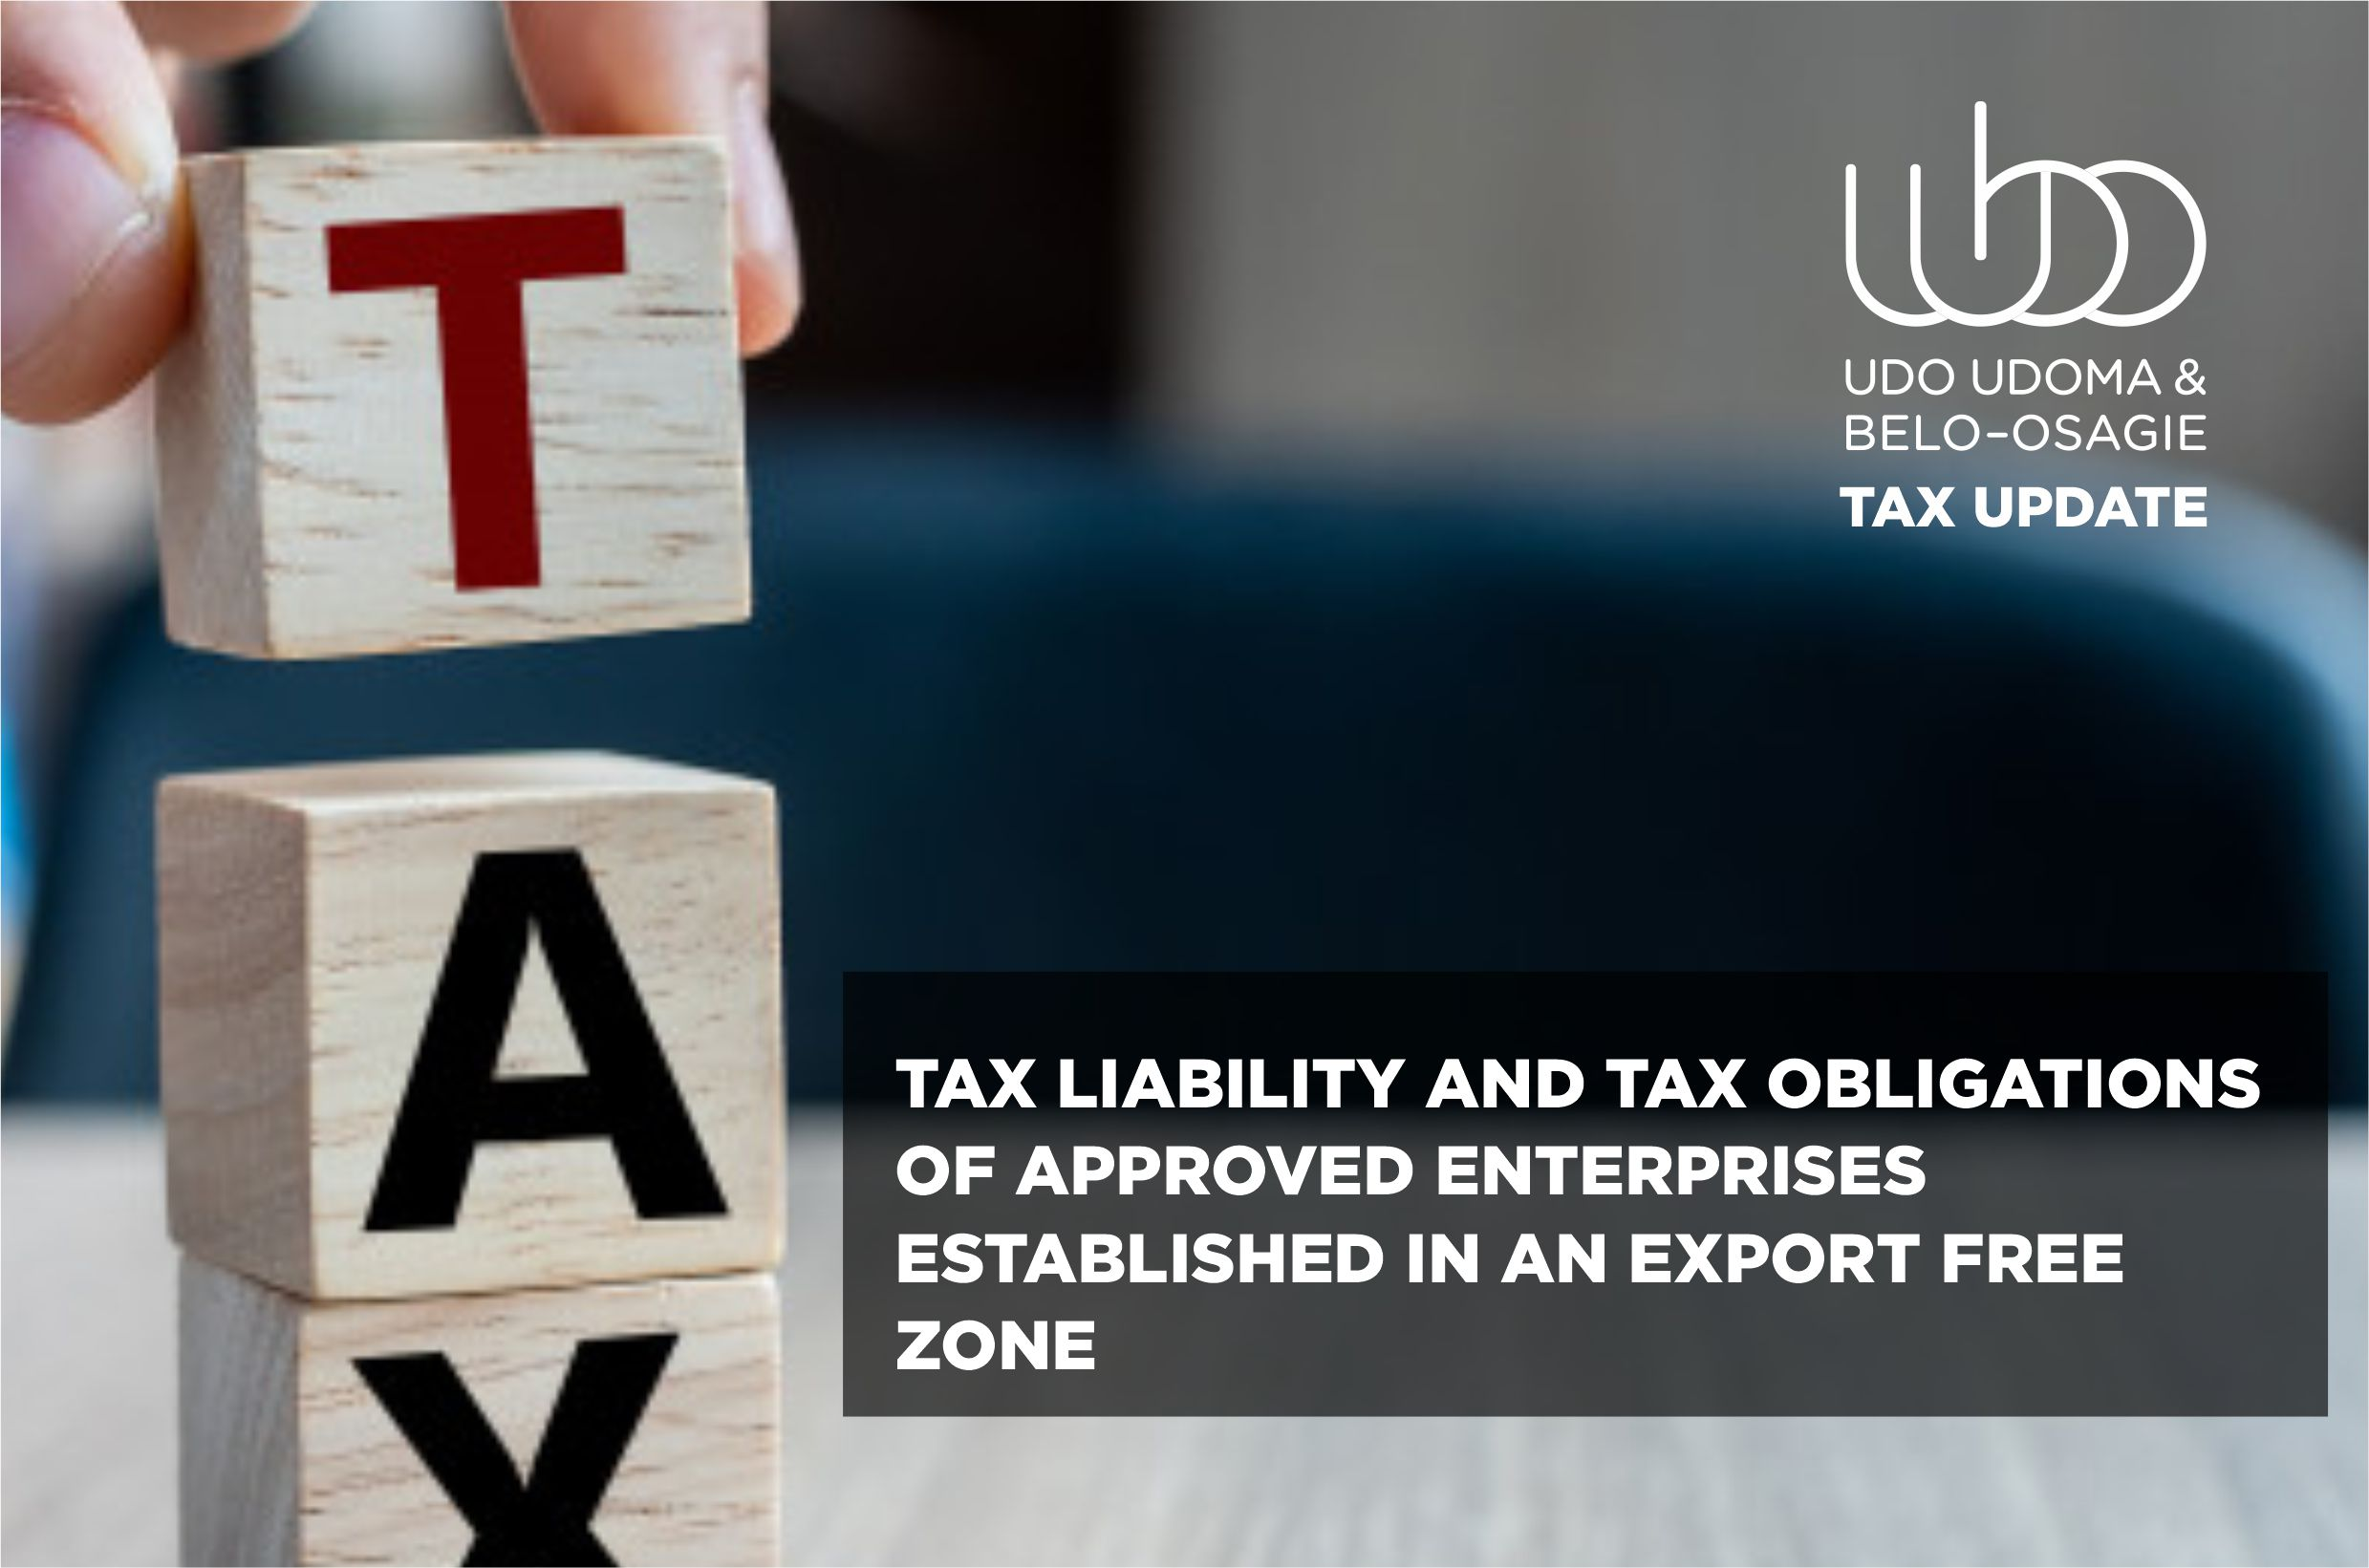 TAX LIABILITY AND TAX OBLIGATIONS OF APPROVED ENTERPRISES ESTABLISHED IN AN EXPORT FREE ZONE